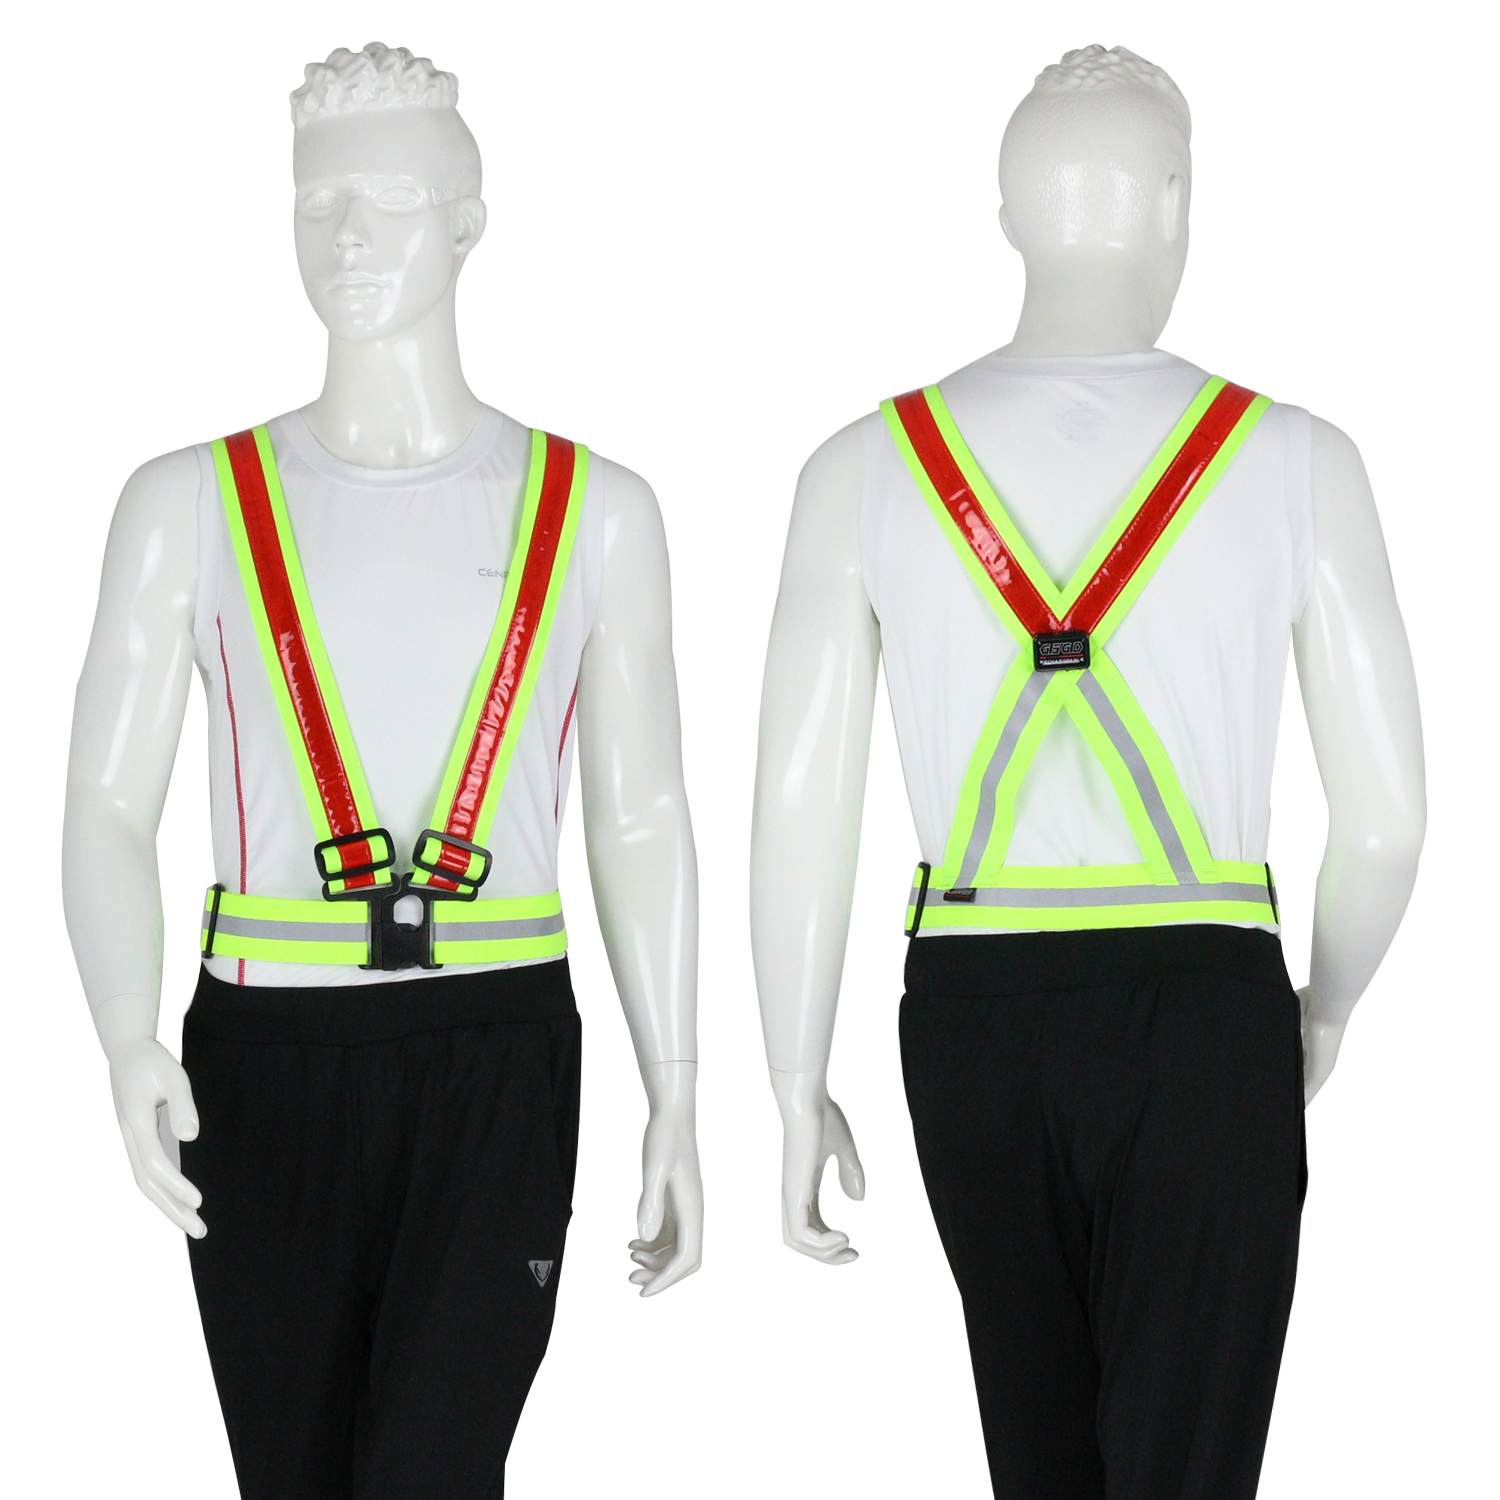 USB rechargeable night vision flashing LED <strong>orange</strong> reflective safety <strong>vest</strong>